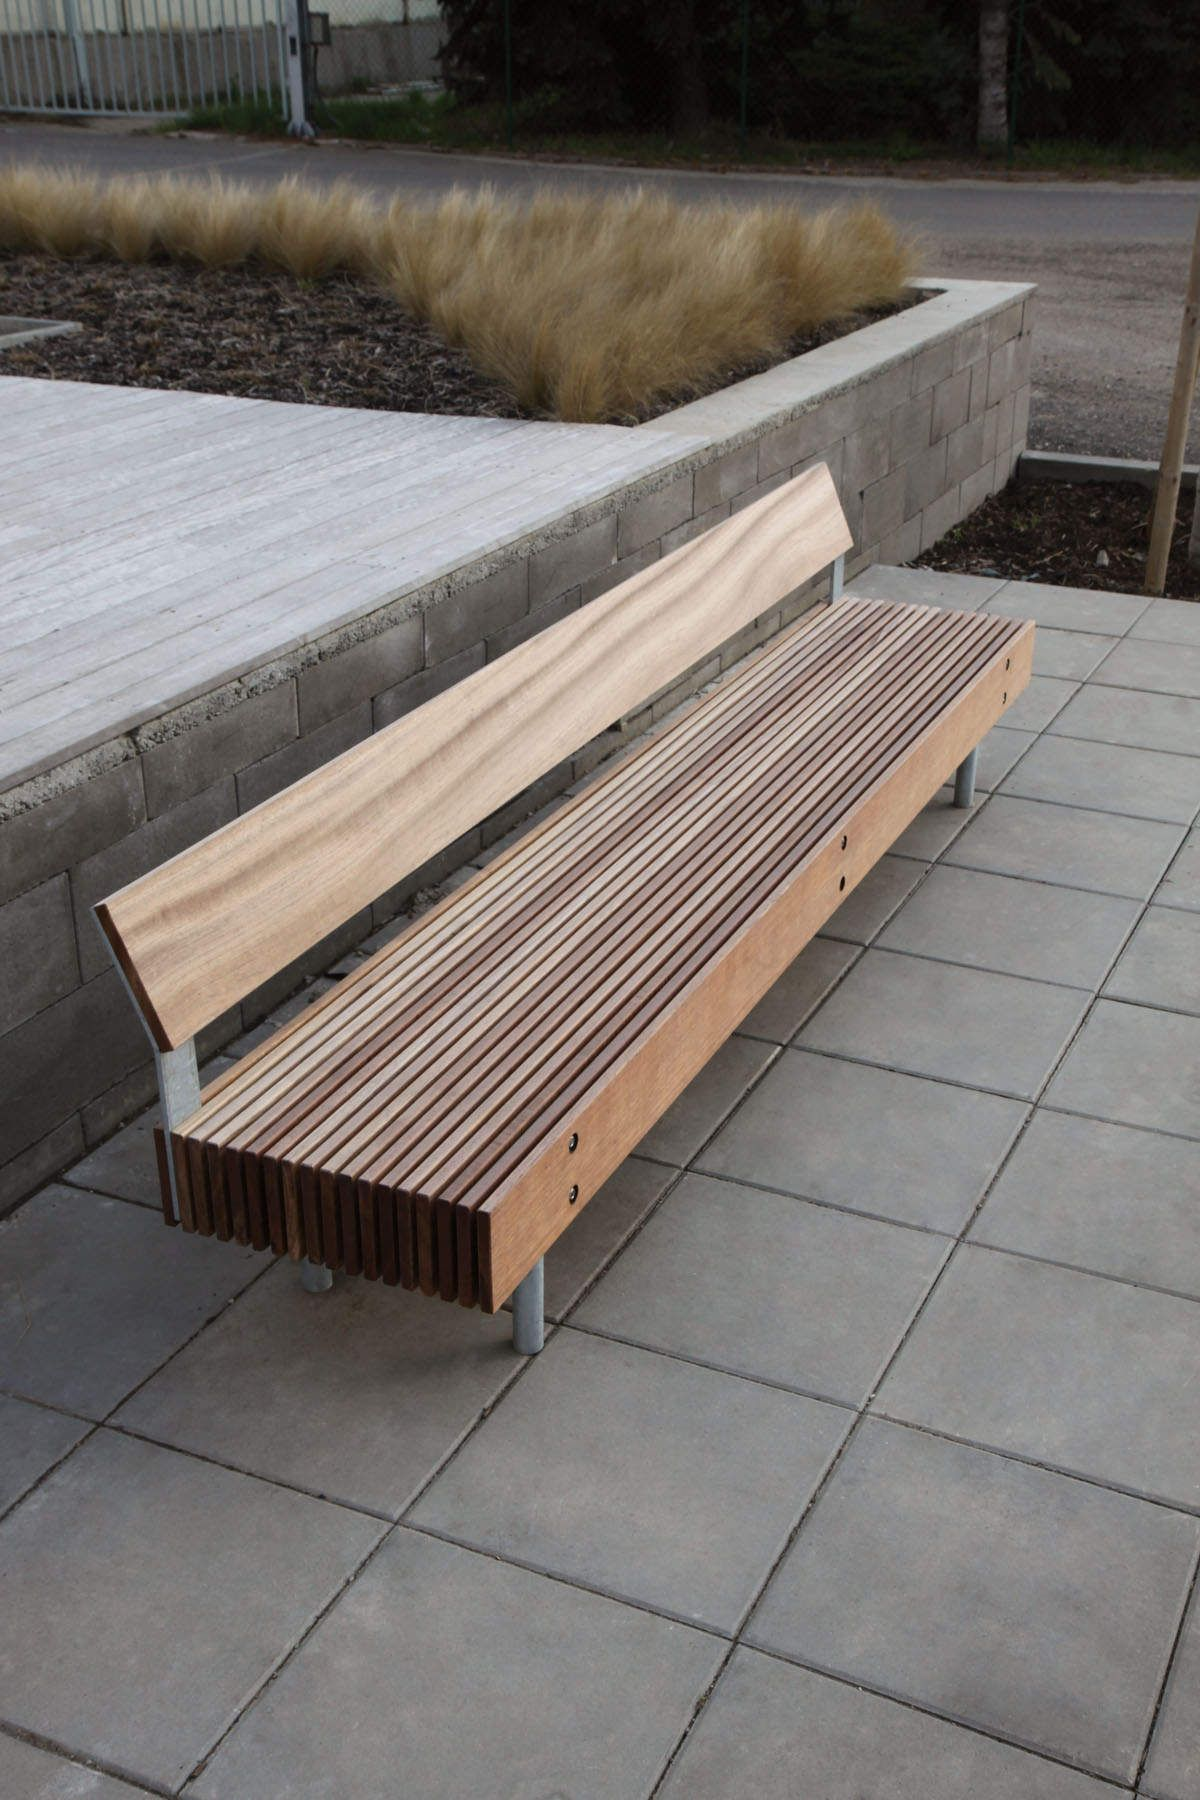 Tremendous Timber Bench Winter Garden Furniture Bench Furniture Short Links Chair Design For Home Short Linksinfo